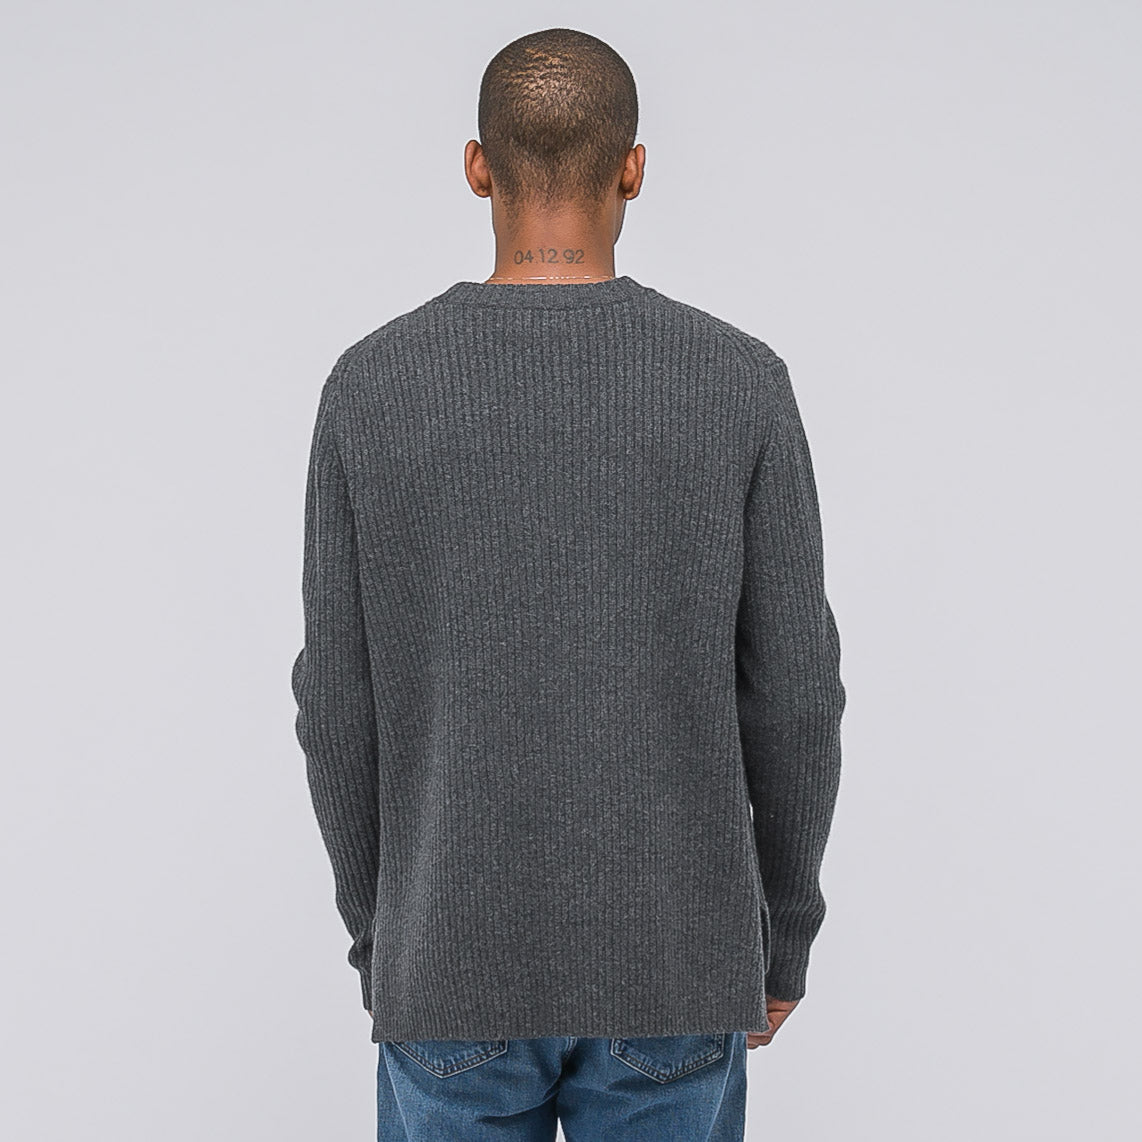 Nicholas Sweater in Charcoal Melange